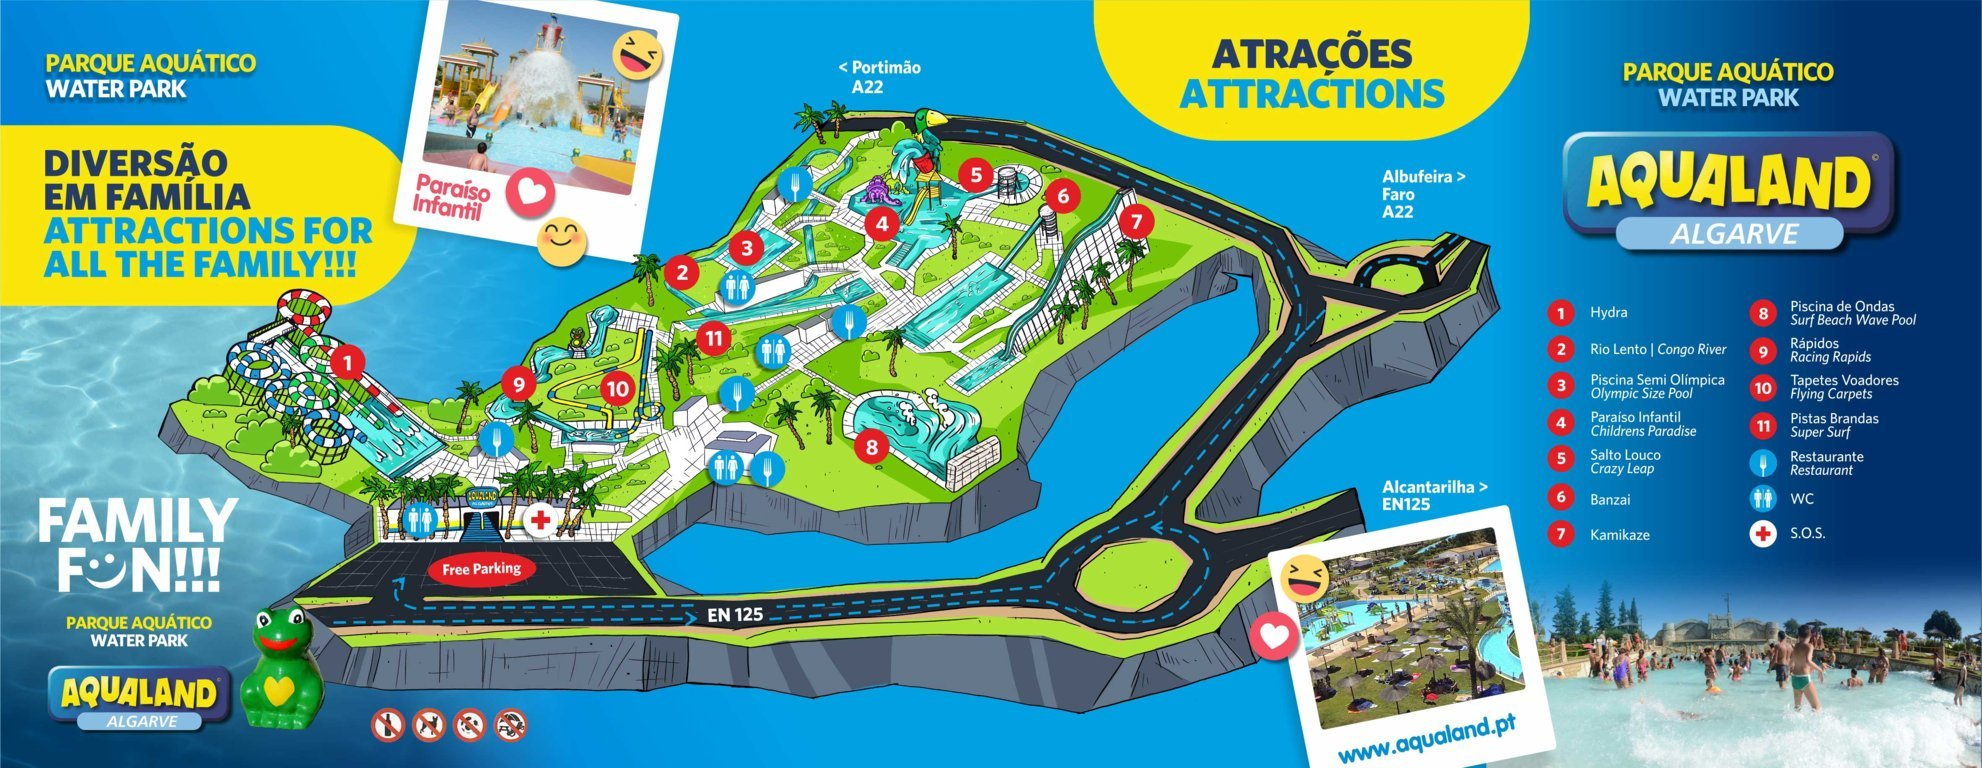 Map of Aqualand Algarve